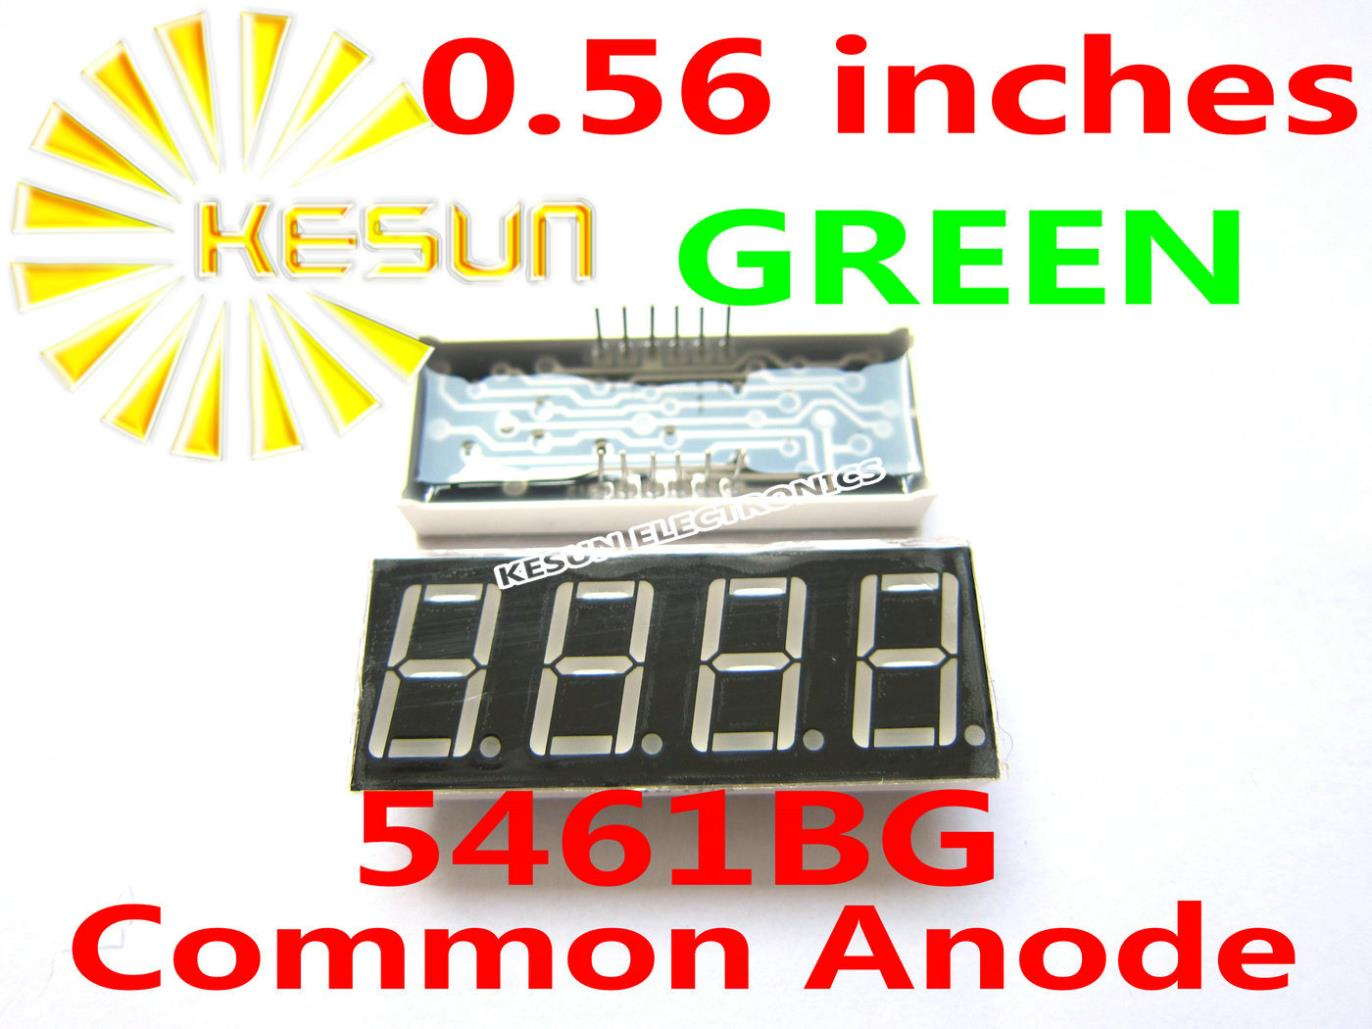 5PCS X 0.56 Inches Green Red Common Anode/Cathode 4 Digital Tube 5461BG 5461AG 5461AS 5461BS LED Display Module